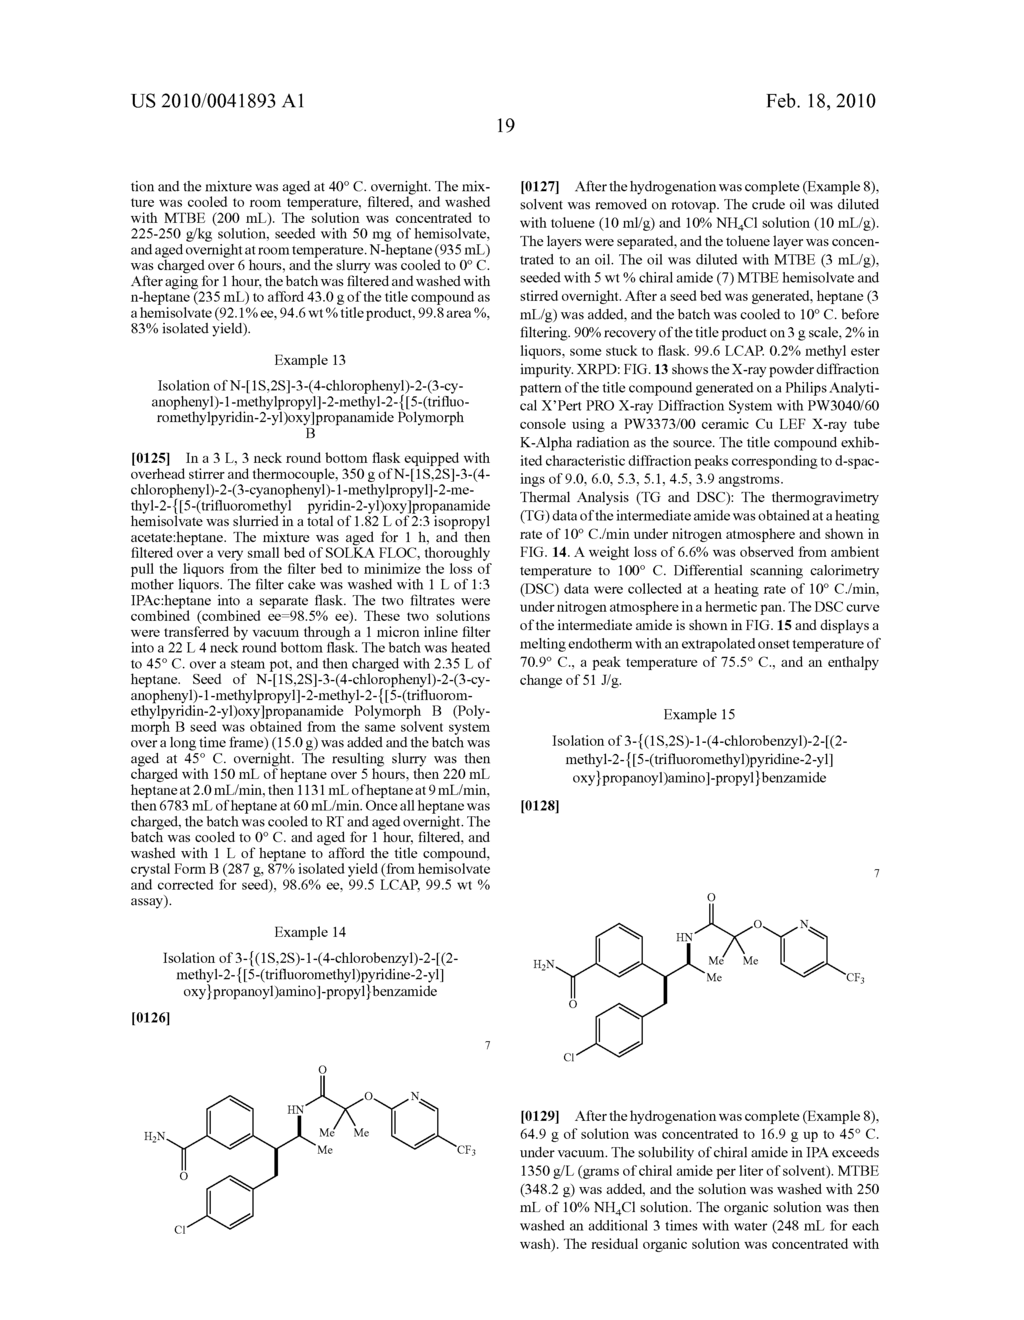 FORMATION OF TETRA-SUBSTITUTED ENAMIDES AND STEREOSELECTIVE REDUCTION THEREOF - diagram, schematic, and image 48